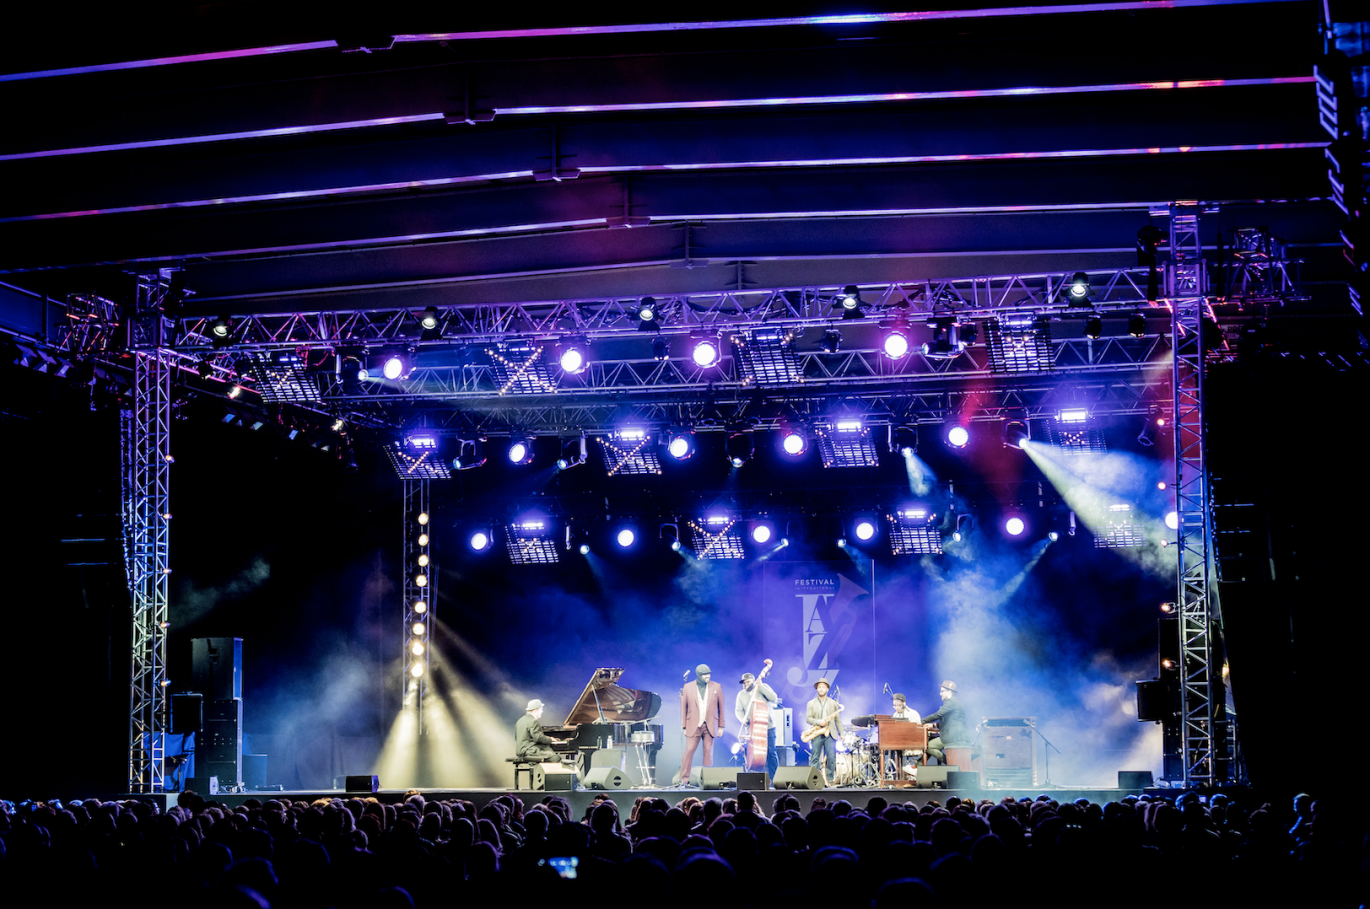 Festival international JAZZ à MEGÈVE